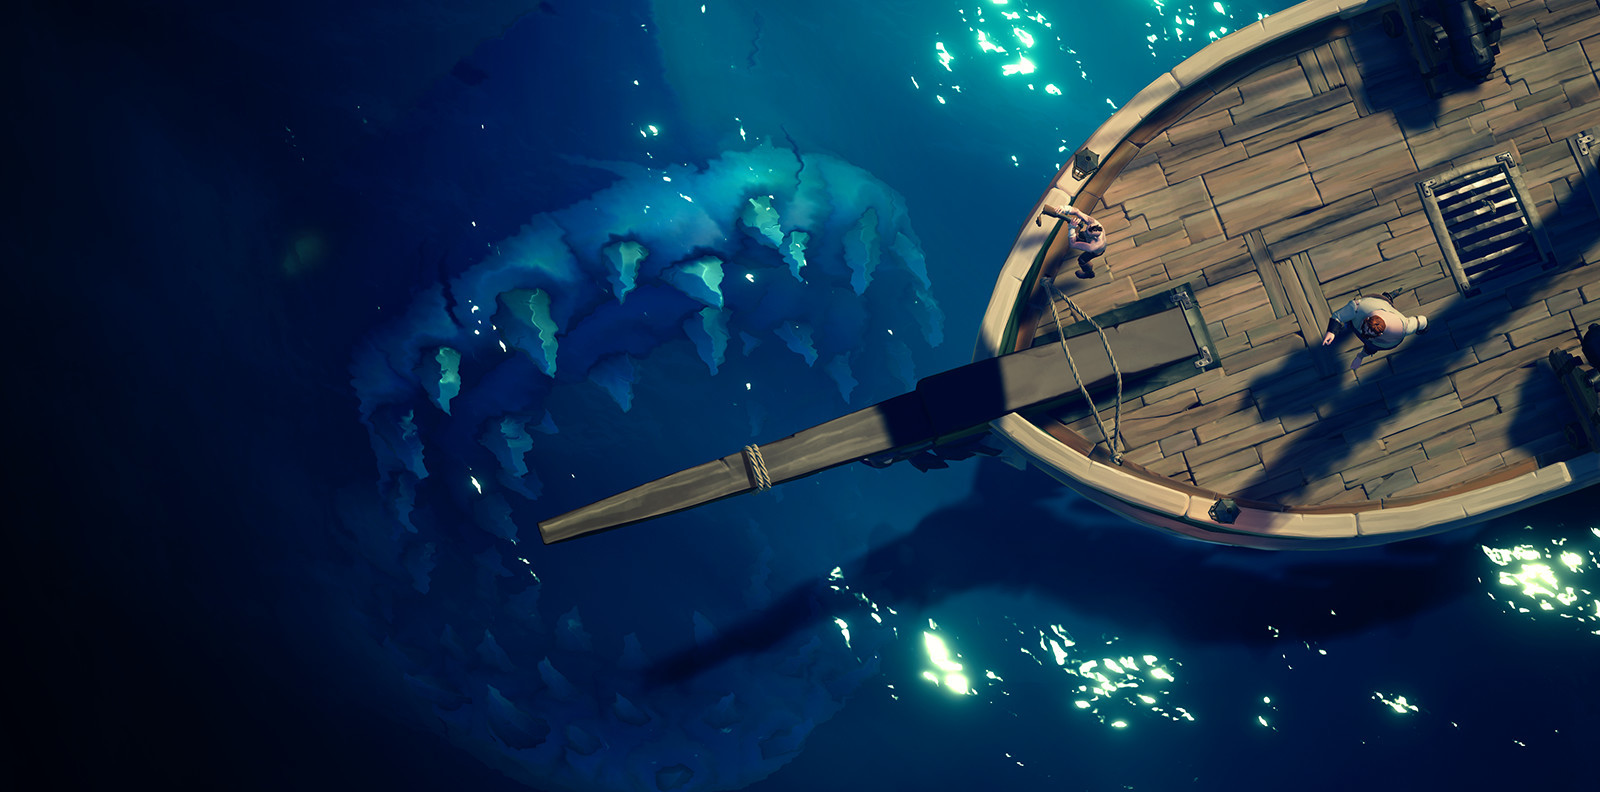 The First Content Update For Sea Of Thieves Landed Last Week Giving Pirates The Opportunity To Go On A Grand Hunt In Search Of A Megalodon